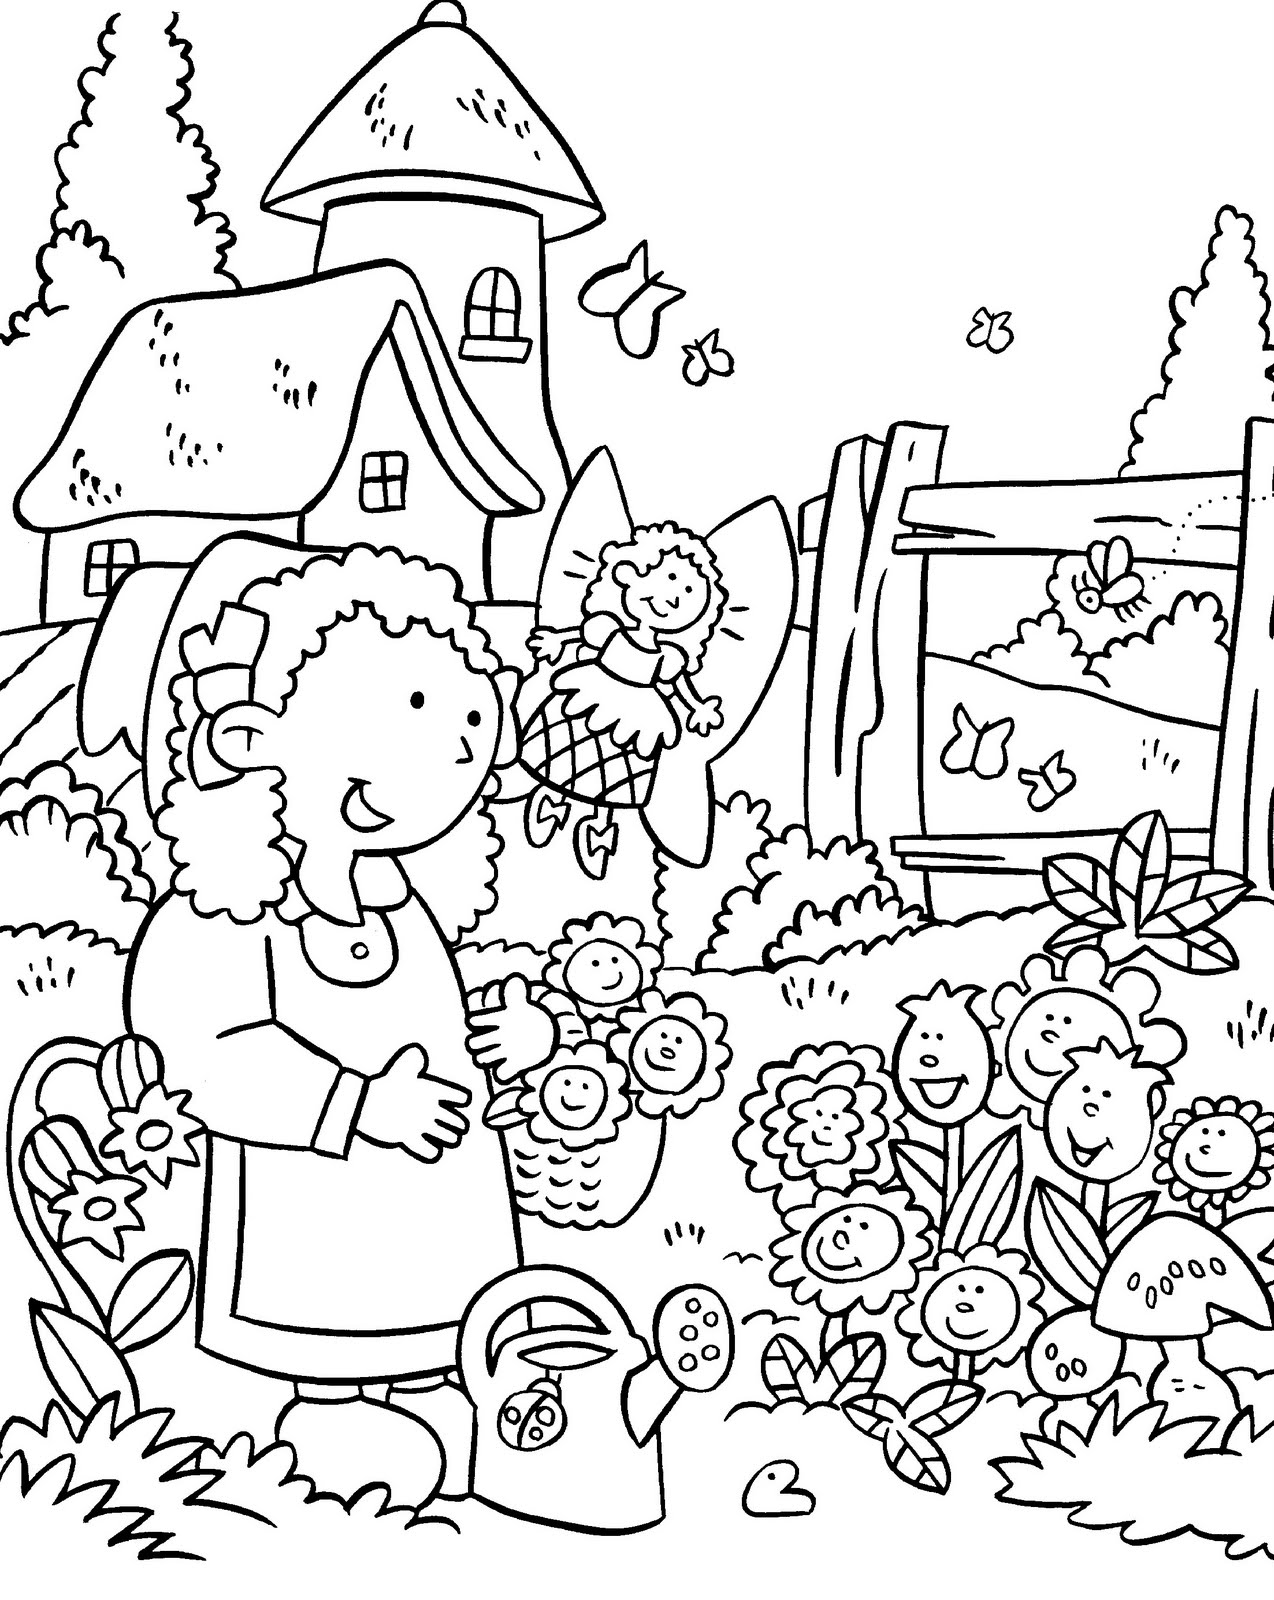 gardening pictures to colour garden coloring pages for preschool at getdrawings free gardening pictures to colour